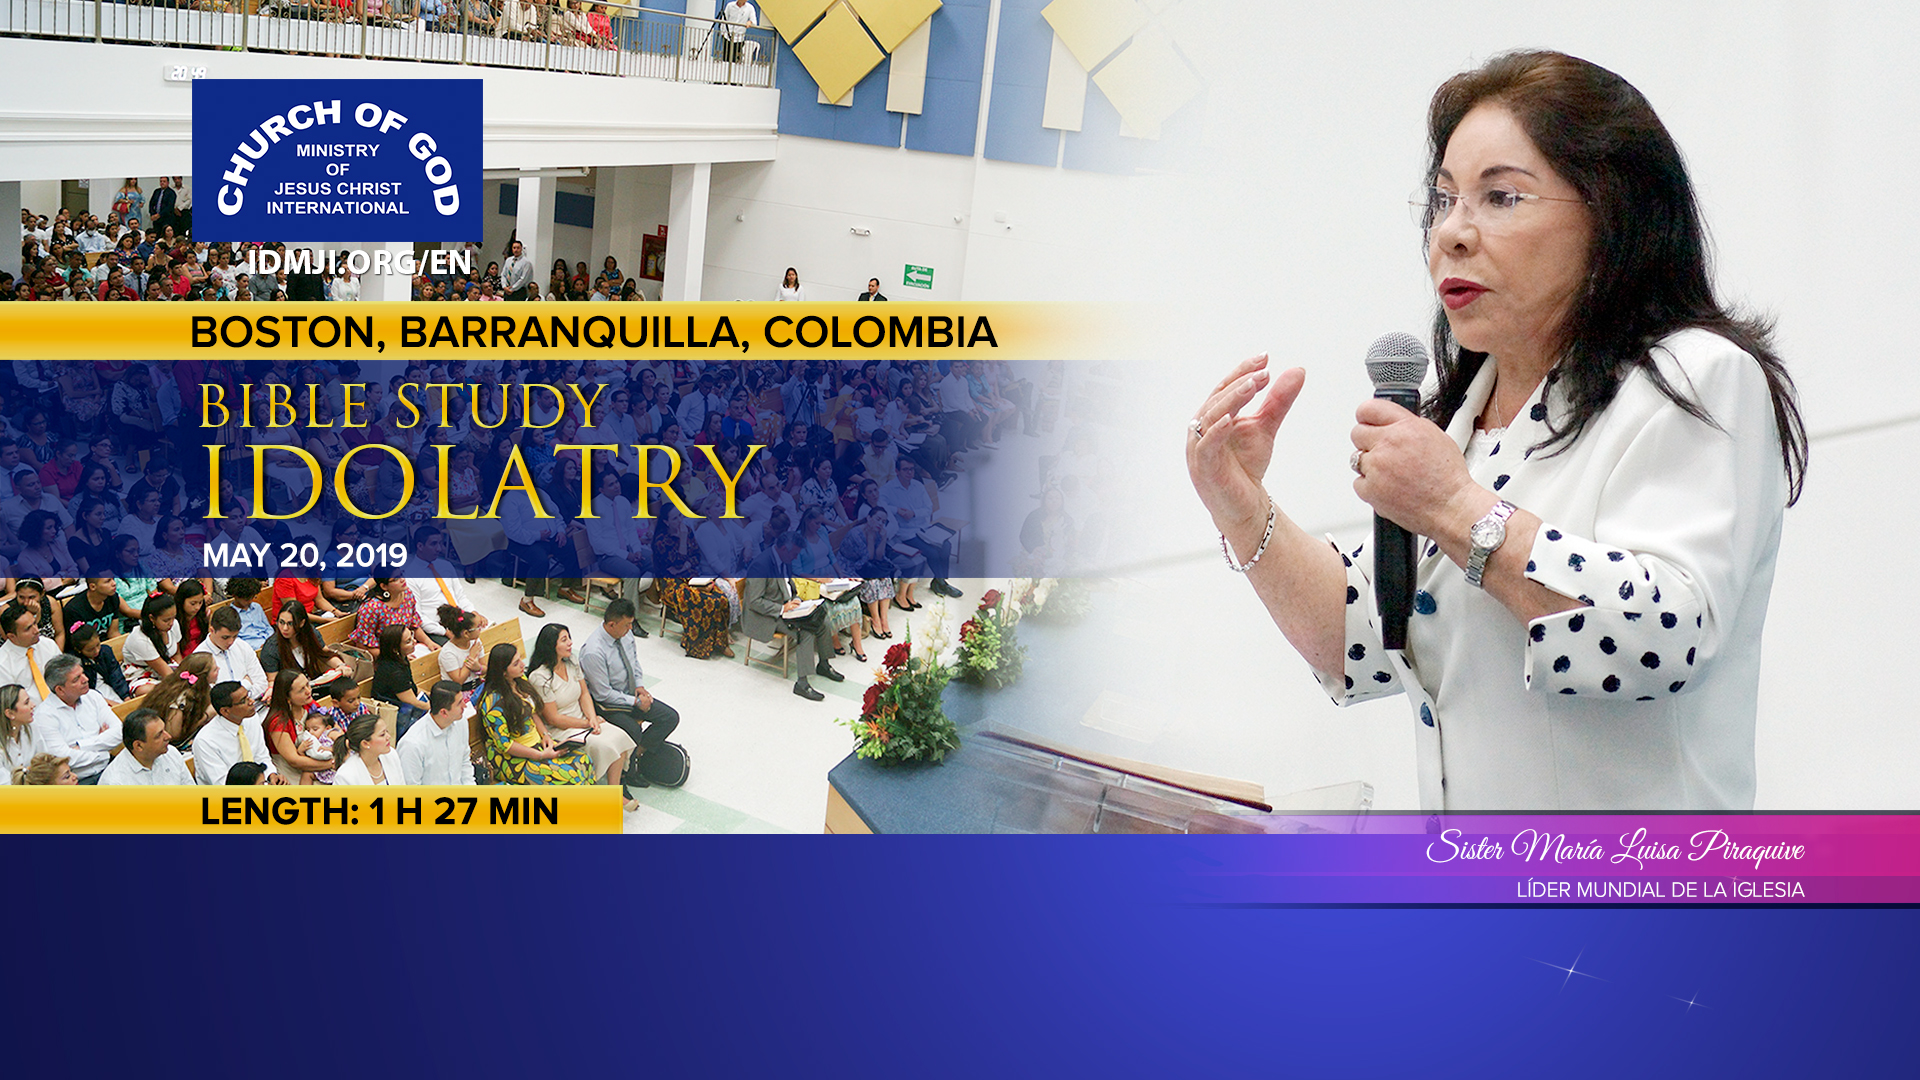 Bible Study: Idolatry – Boston, Barranquilla, Colombia